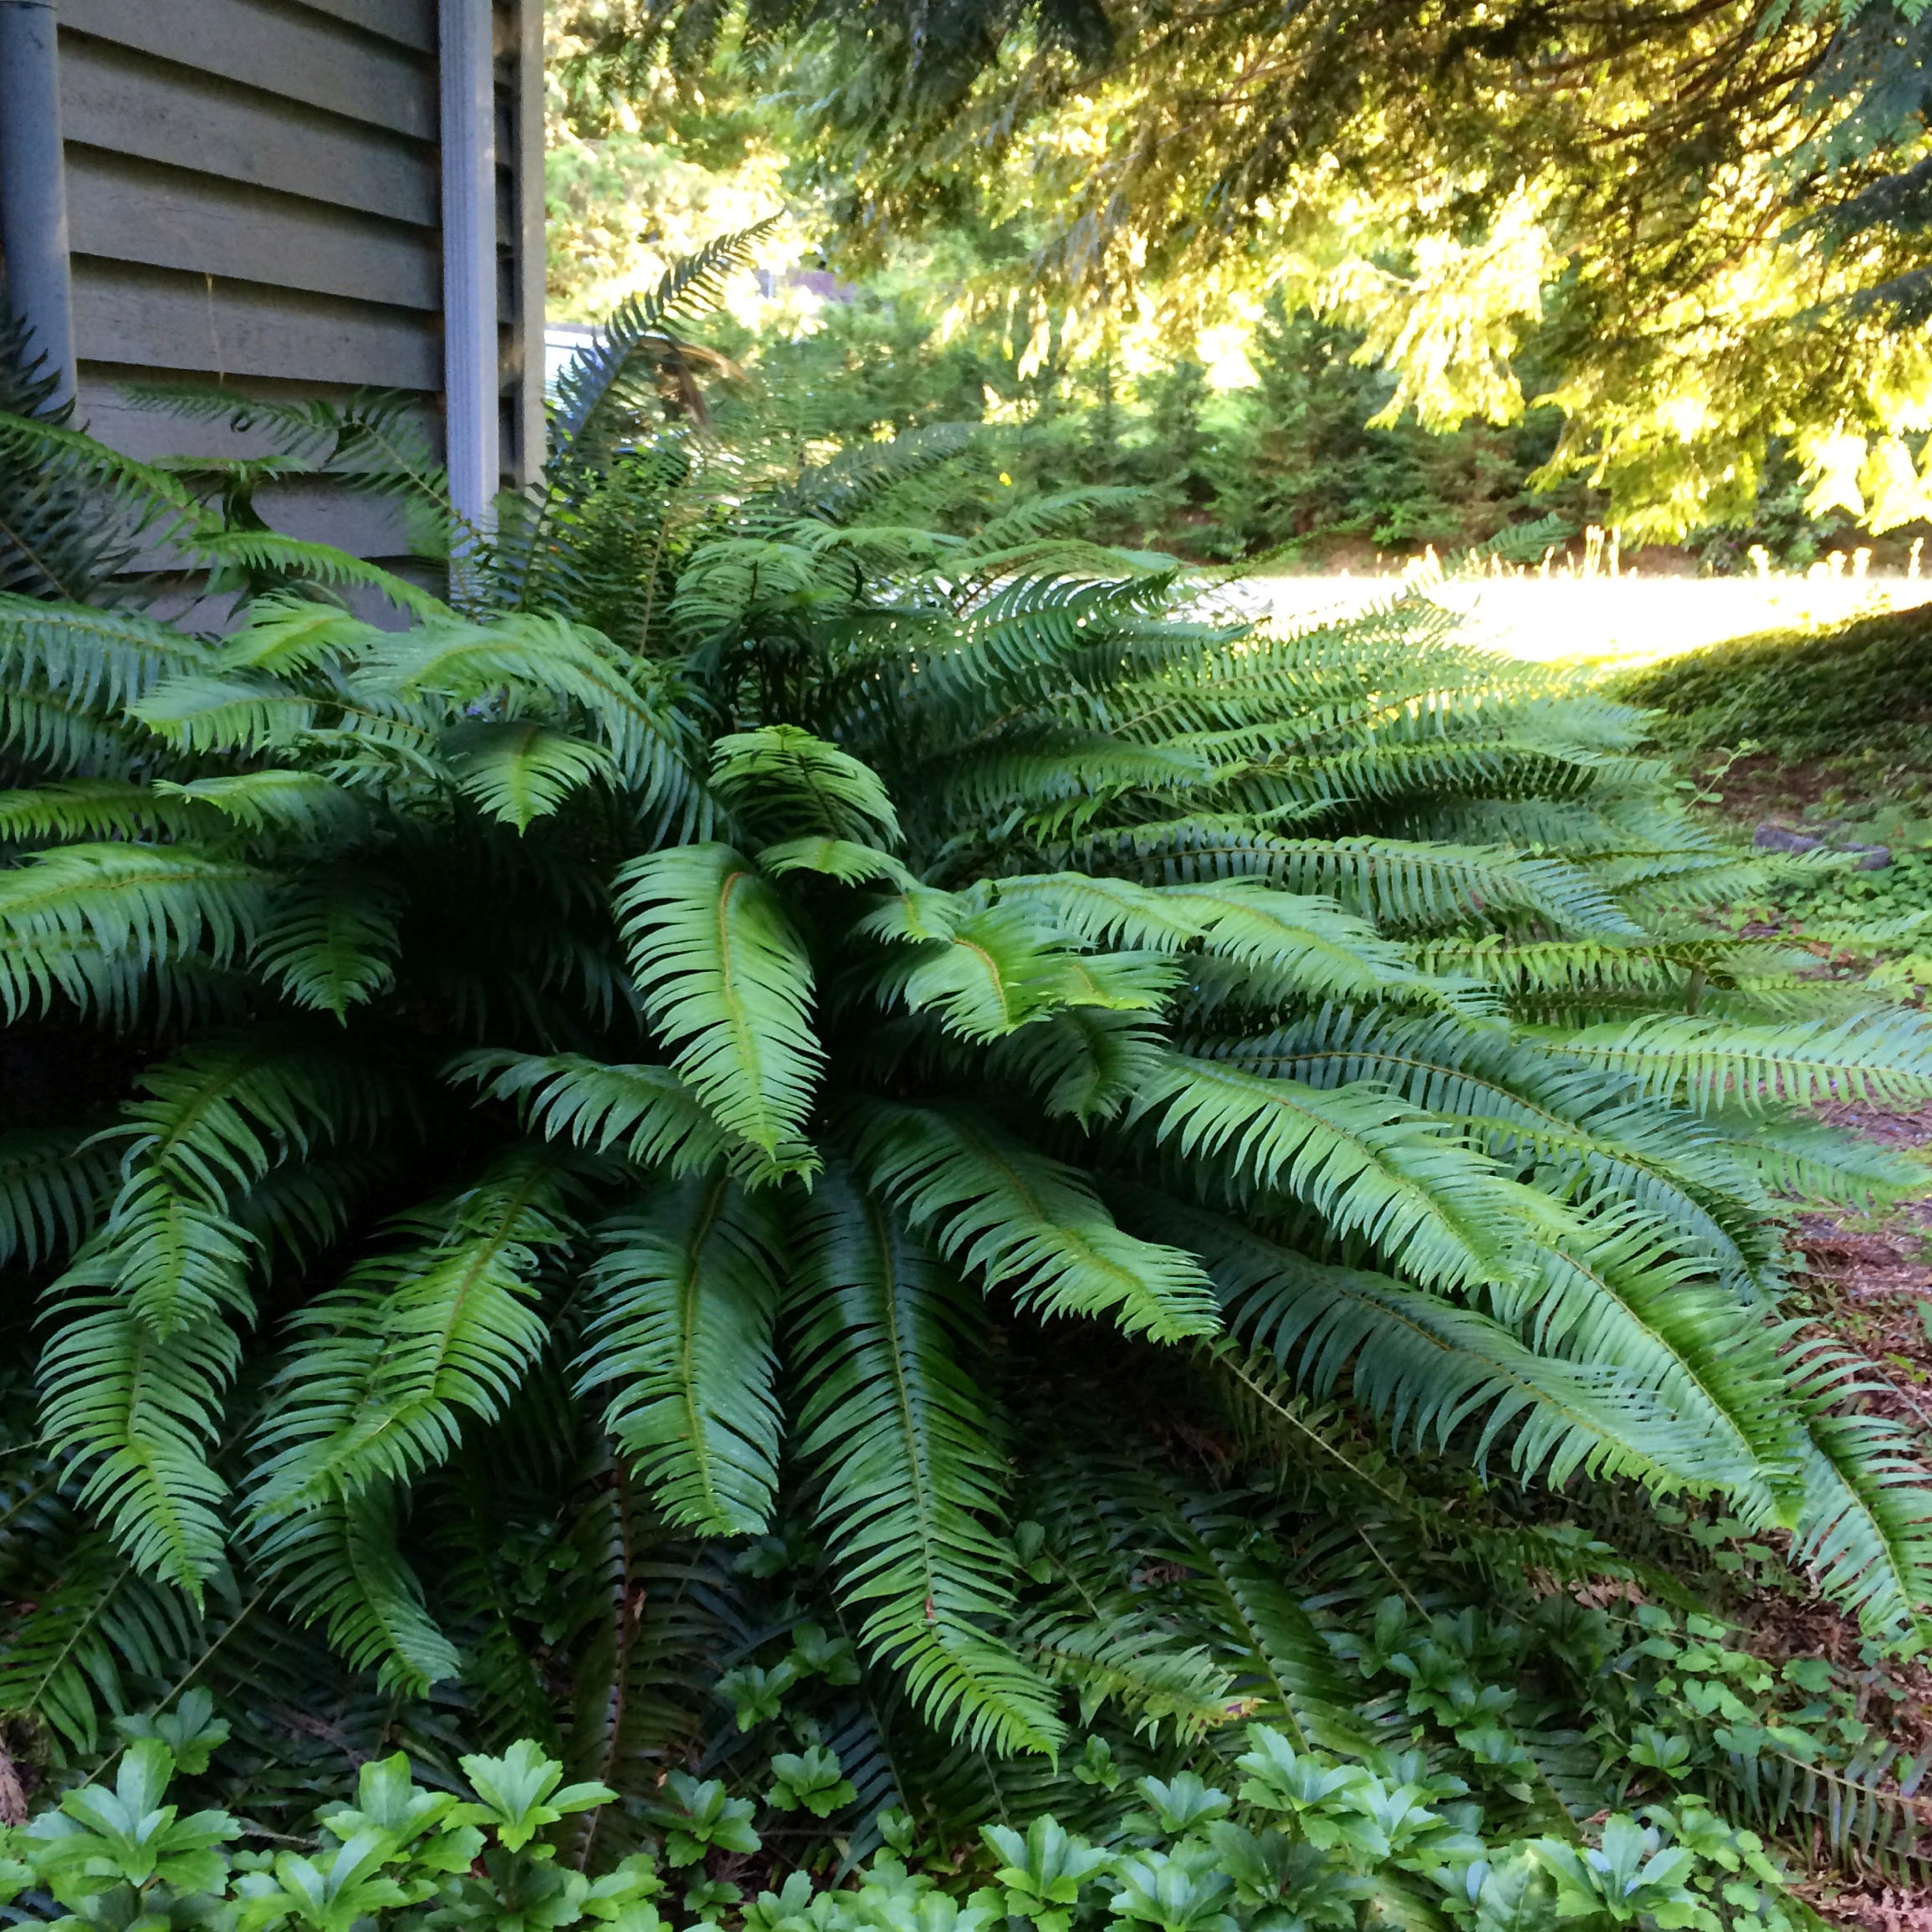 This is Big Bertha. She's my favorite fern. Just please don't tell my other ferns. #crazyfernlady